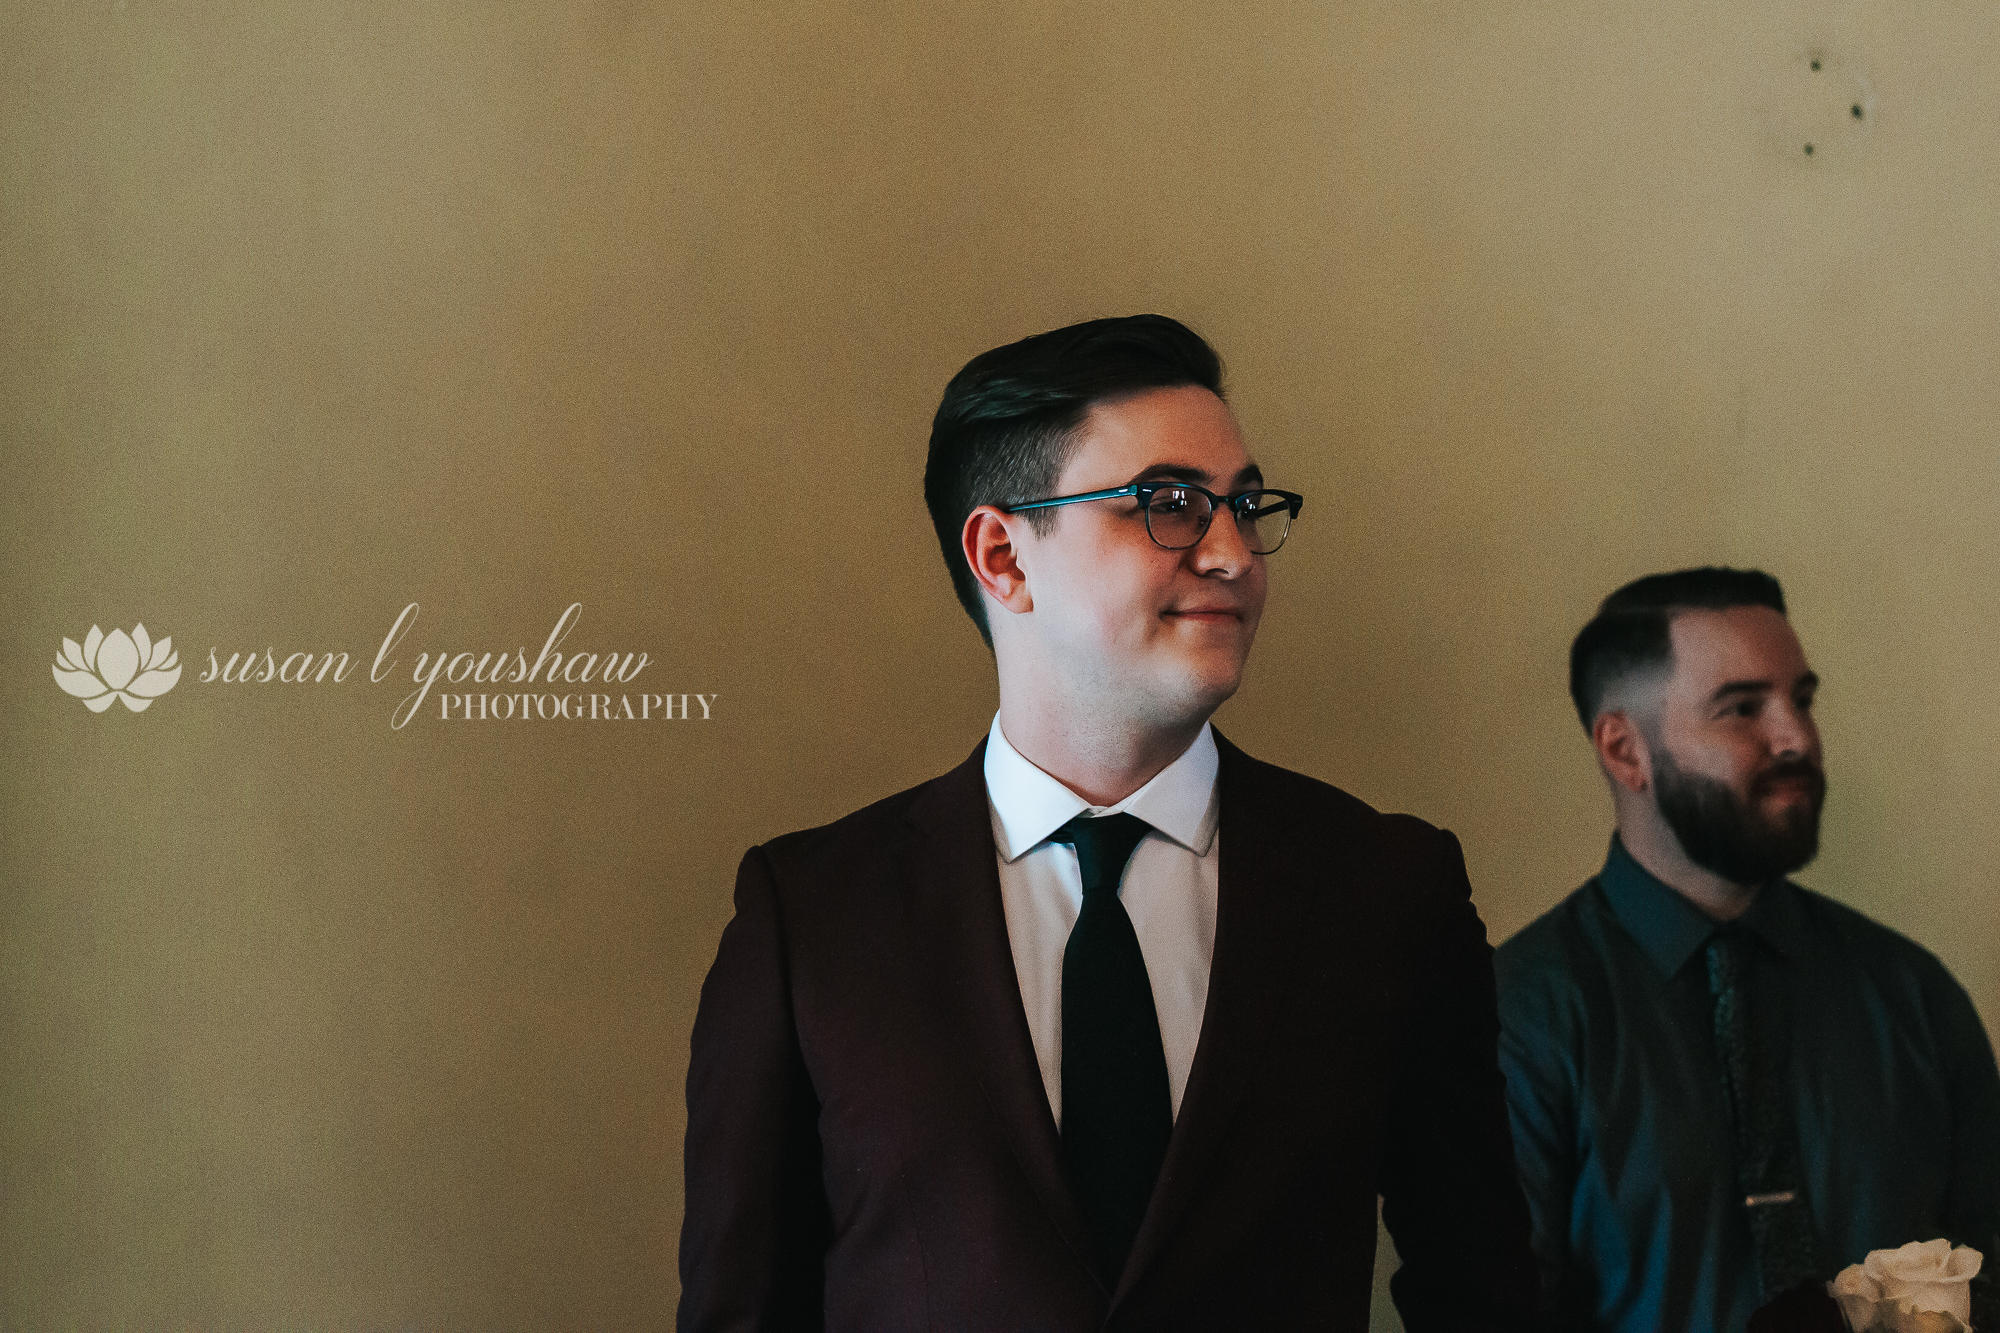 Chynna and John Wedding 05-18-2019 SLY Photography-97.jpg